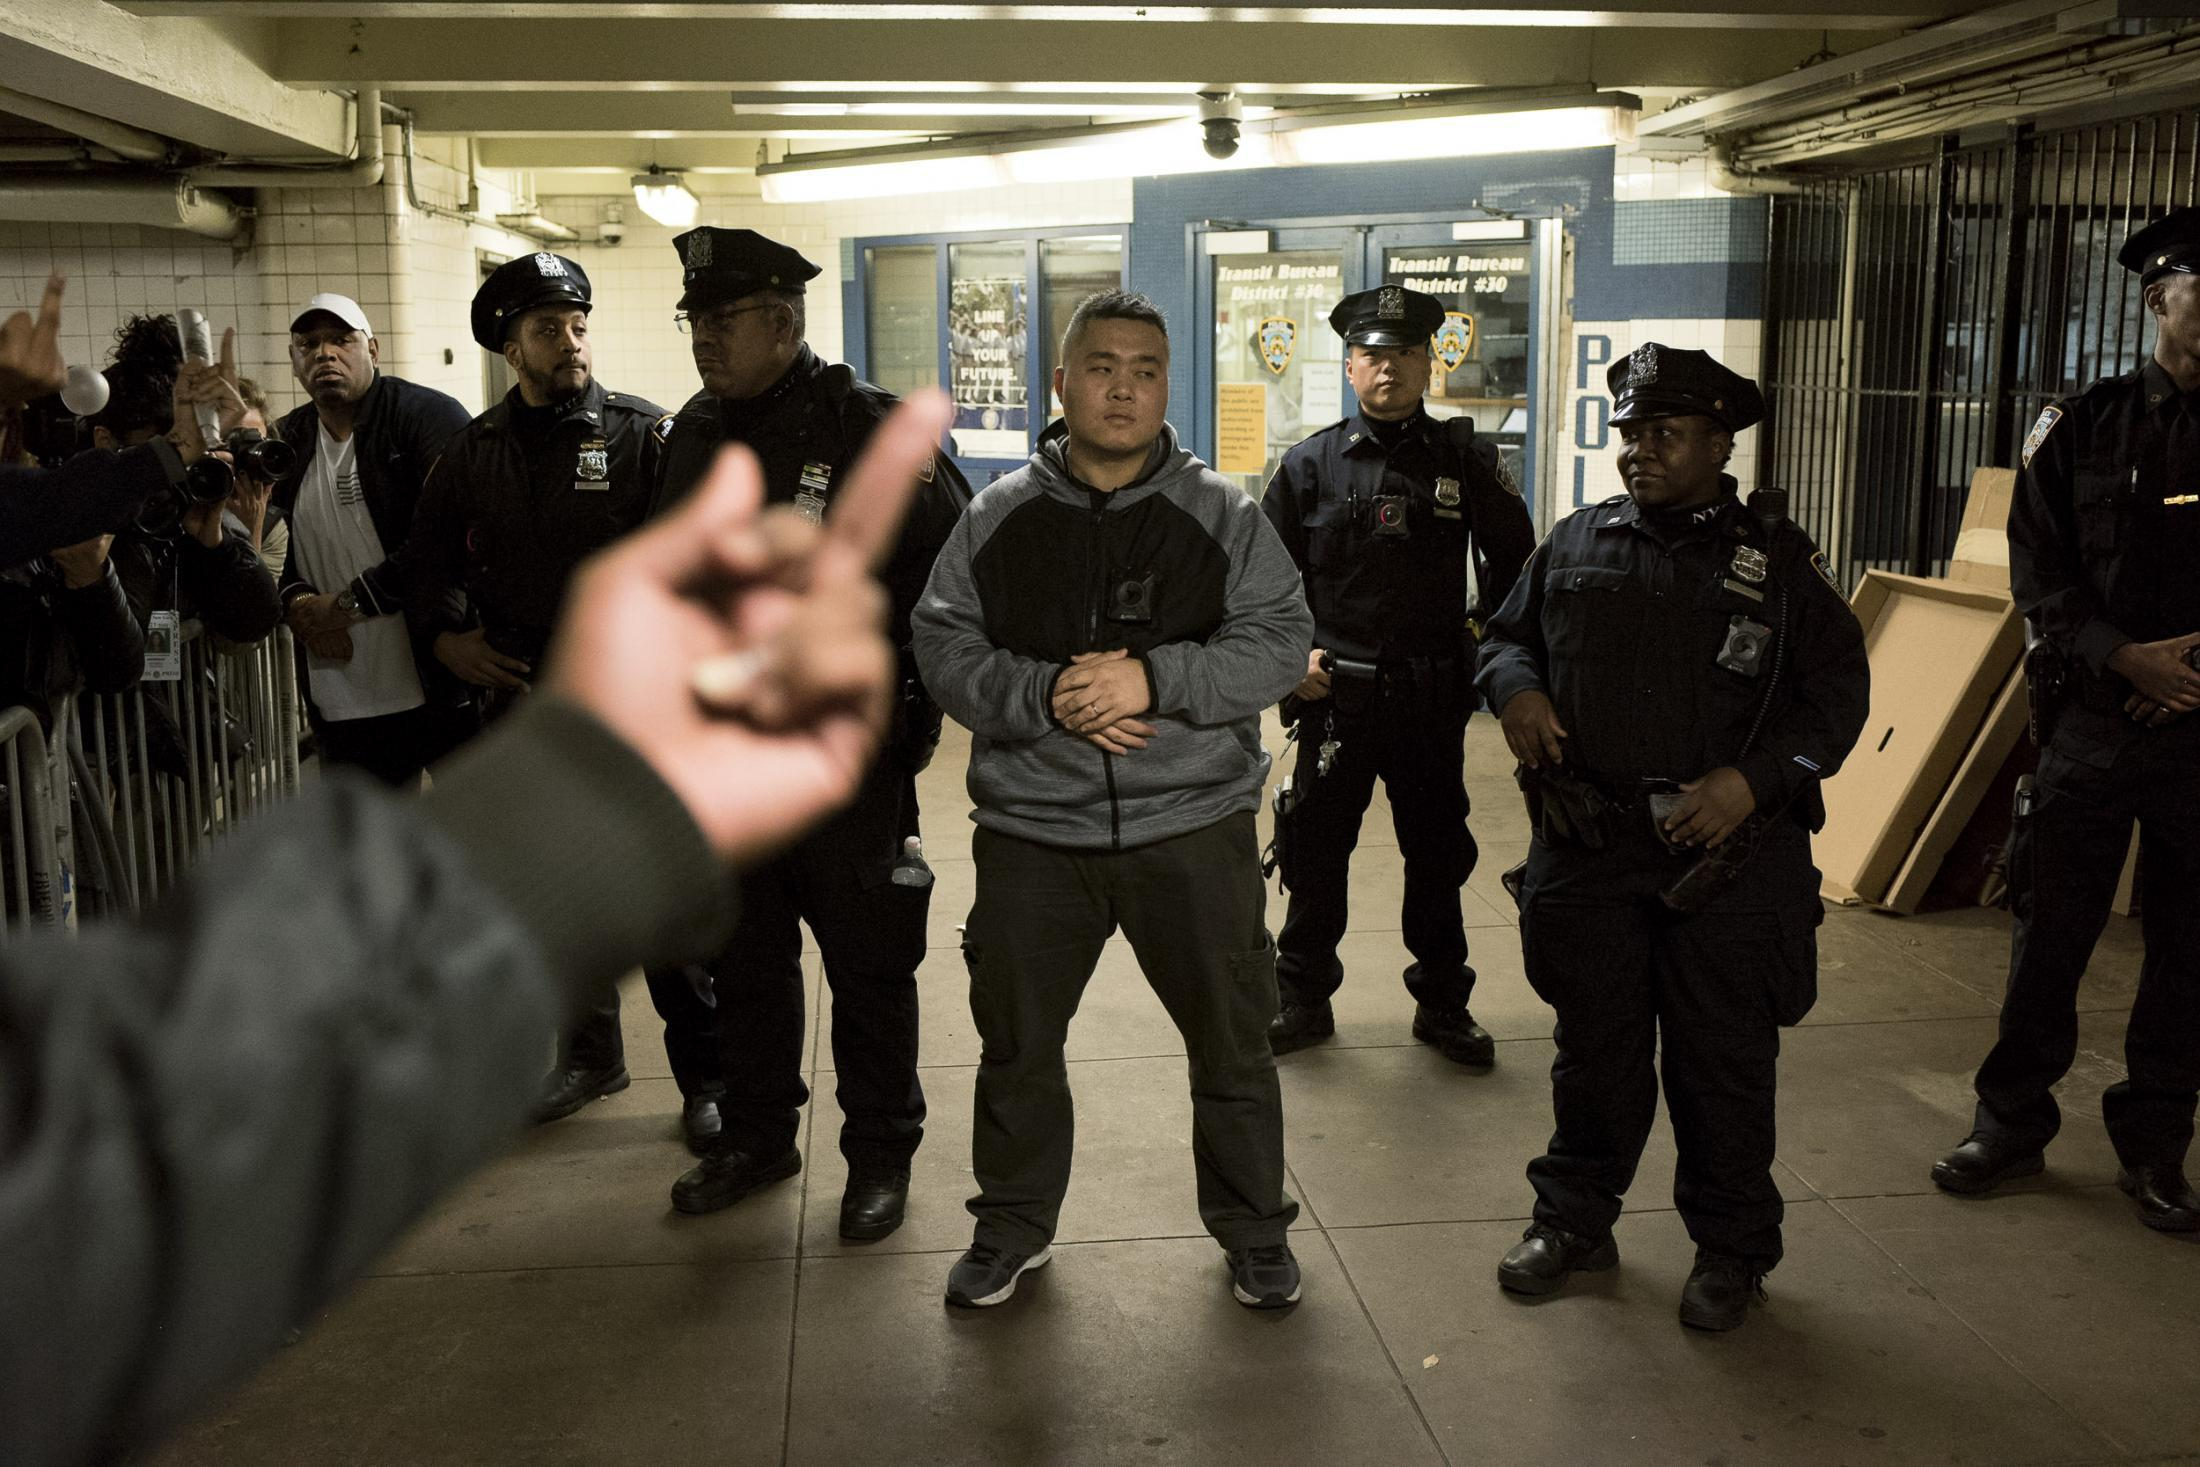 A group of protesters confronting NYPD officers inside a subway station, at a protest for the detention of Adrian Napier. New York, November 2020.